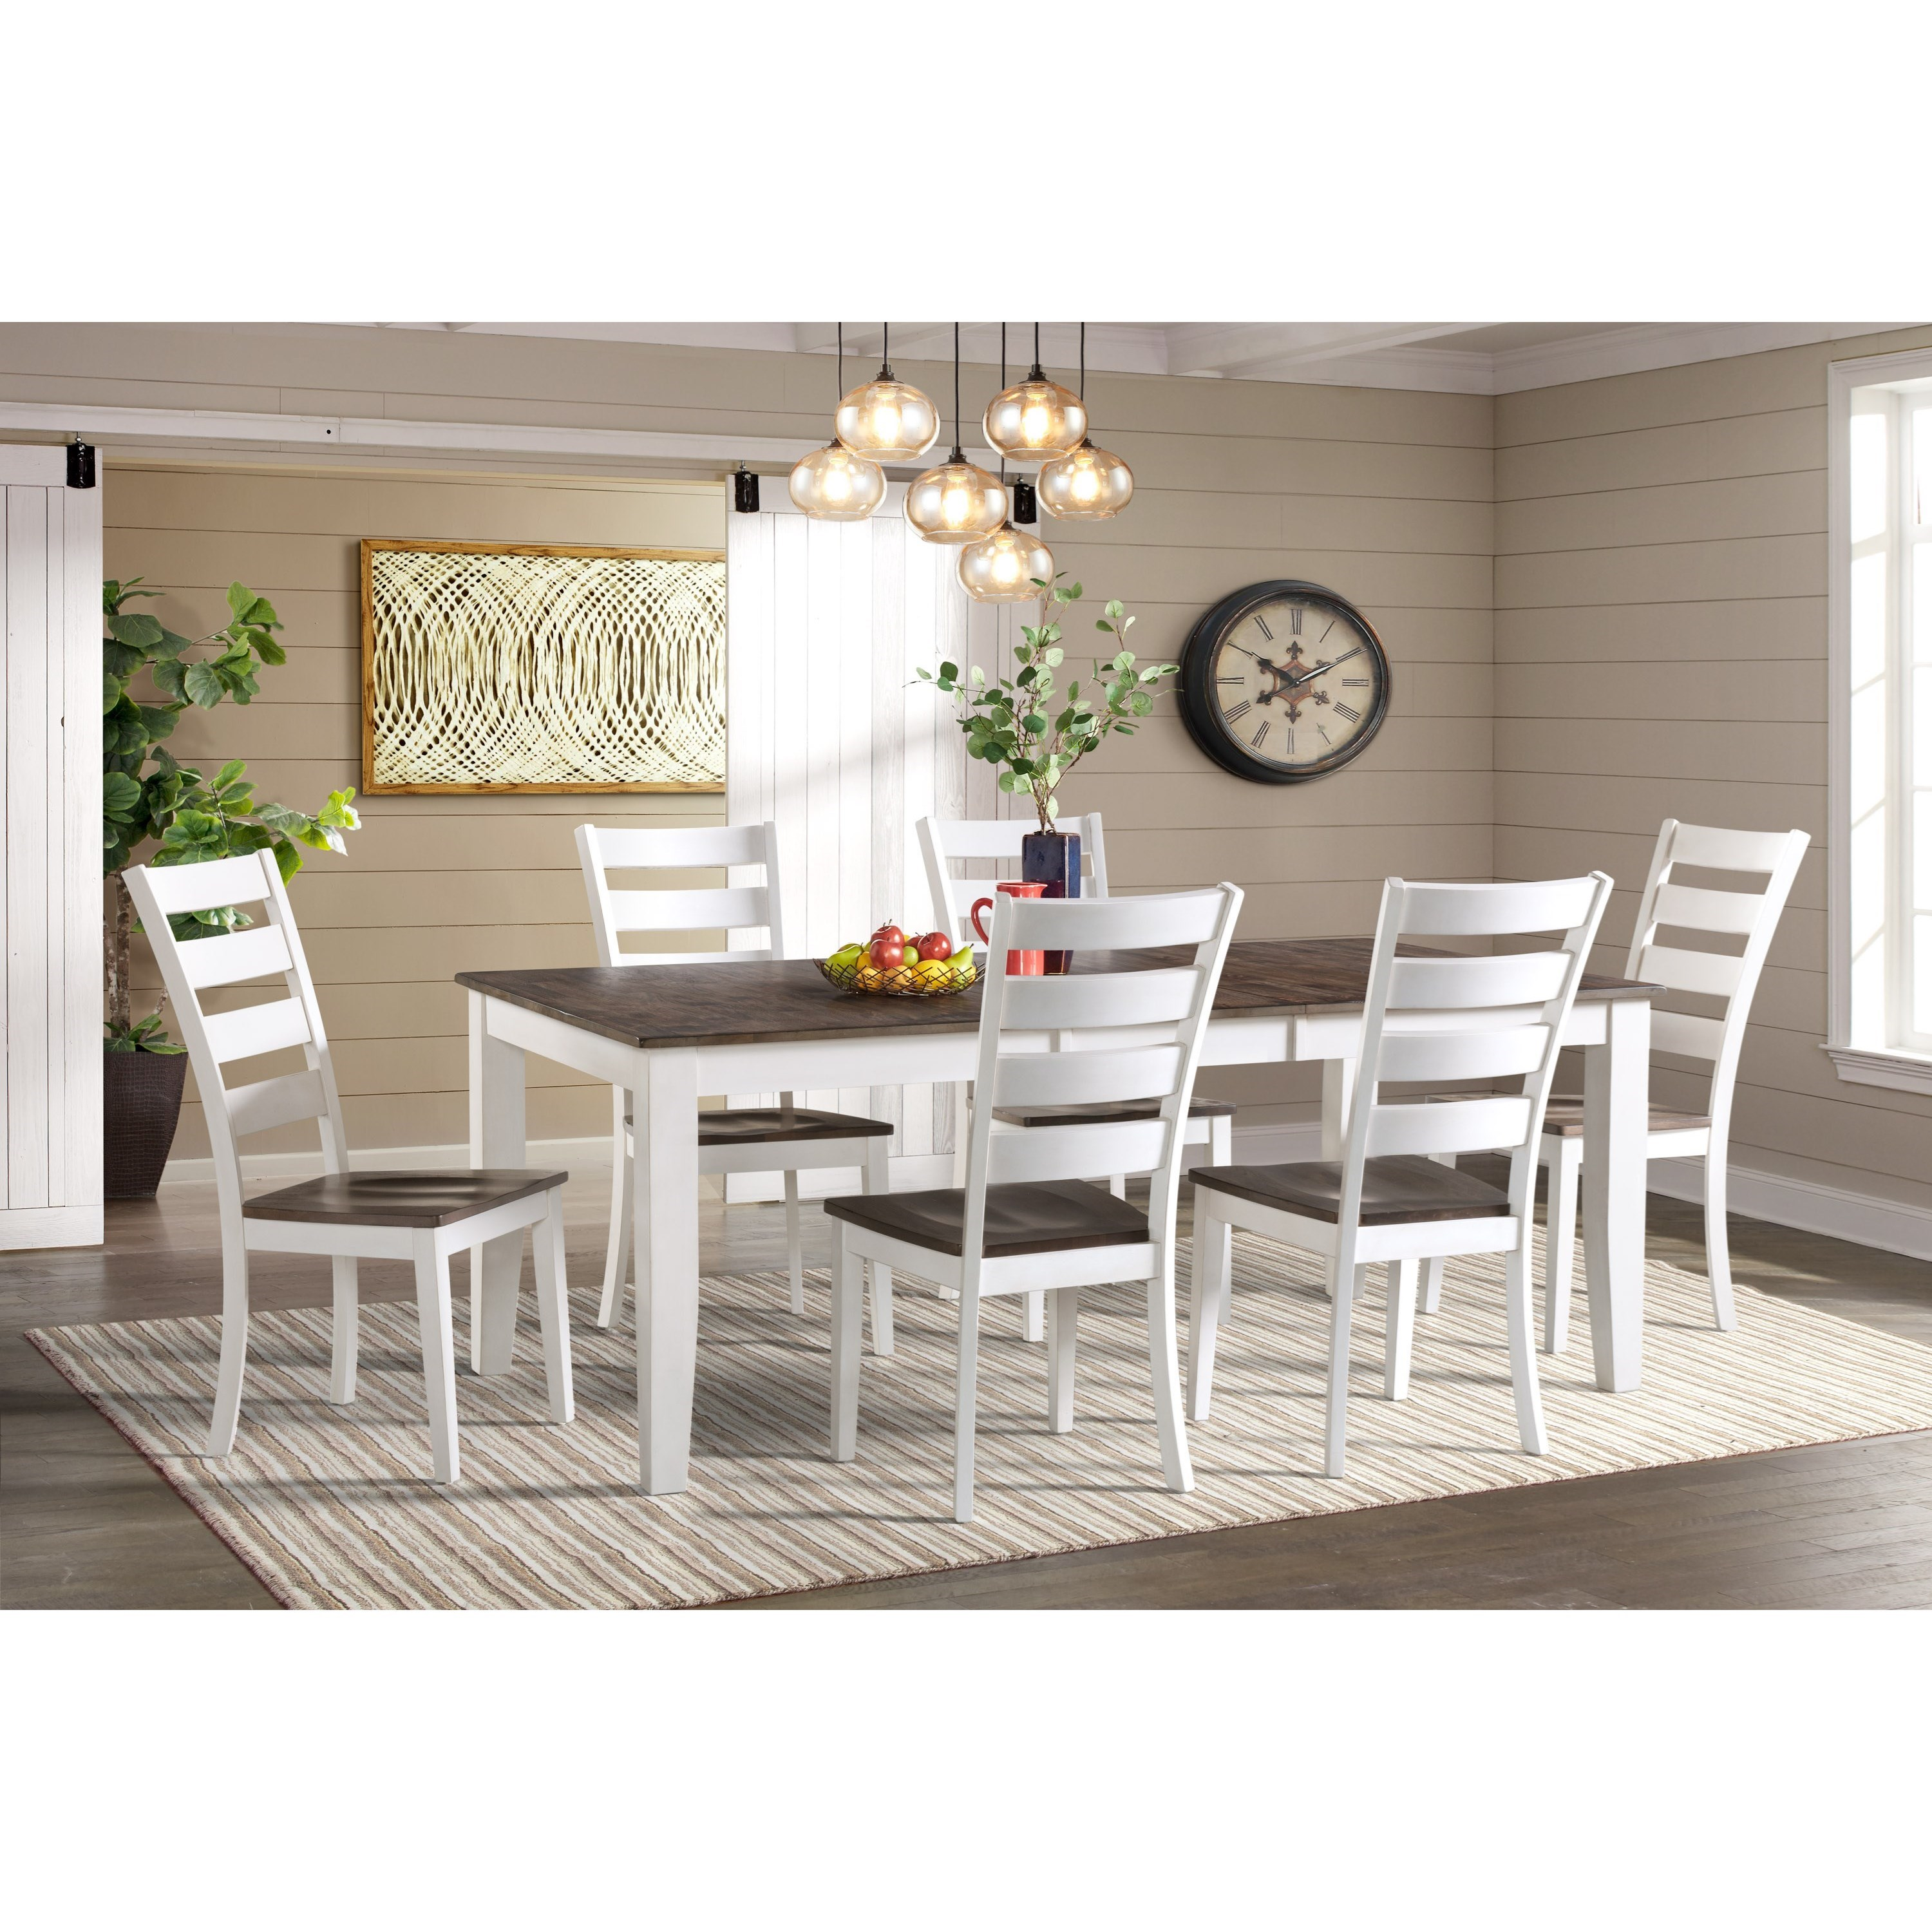 Kona 7-Piece Dining Room Set by Intercon at Dinette Depot